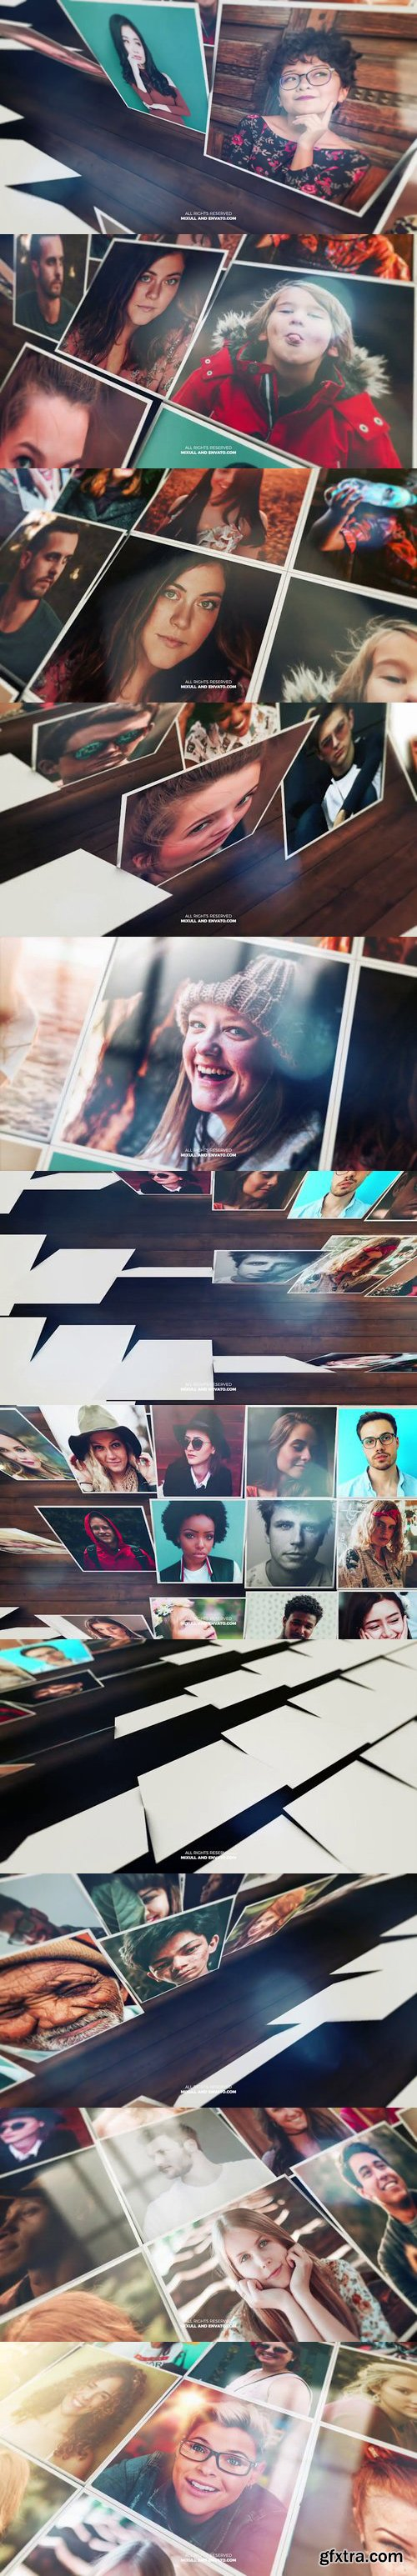 Videohive - Mosaic Photo Reveal - 22190811